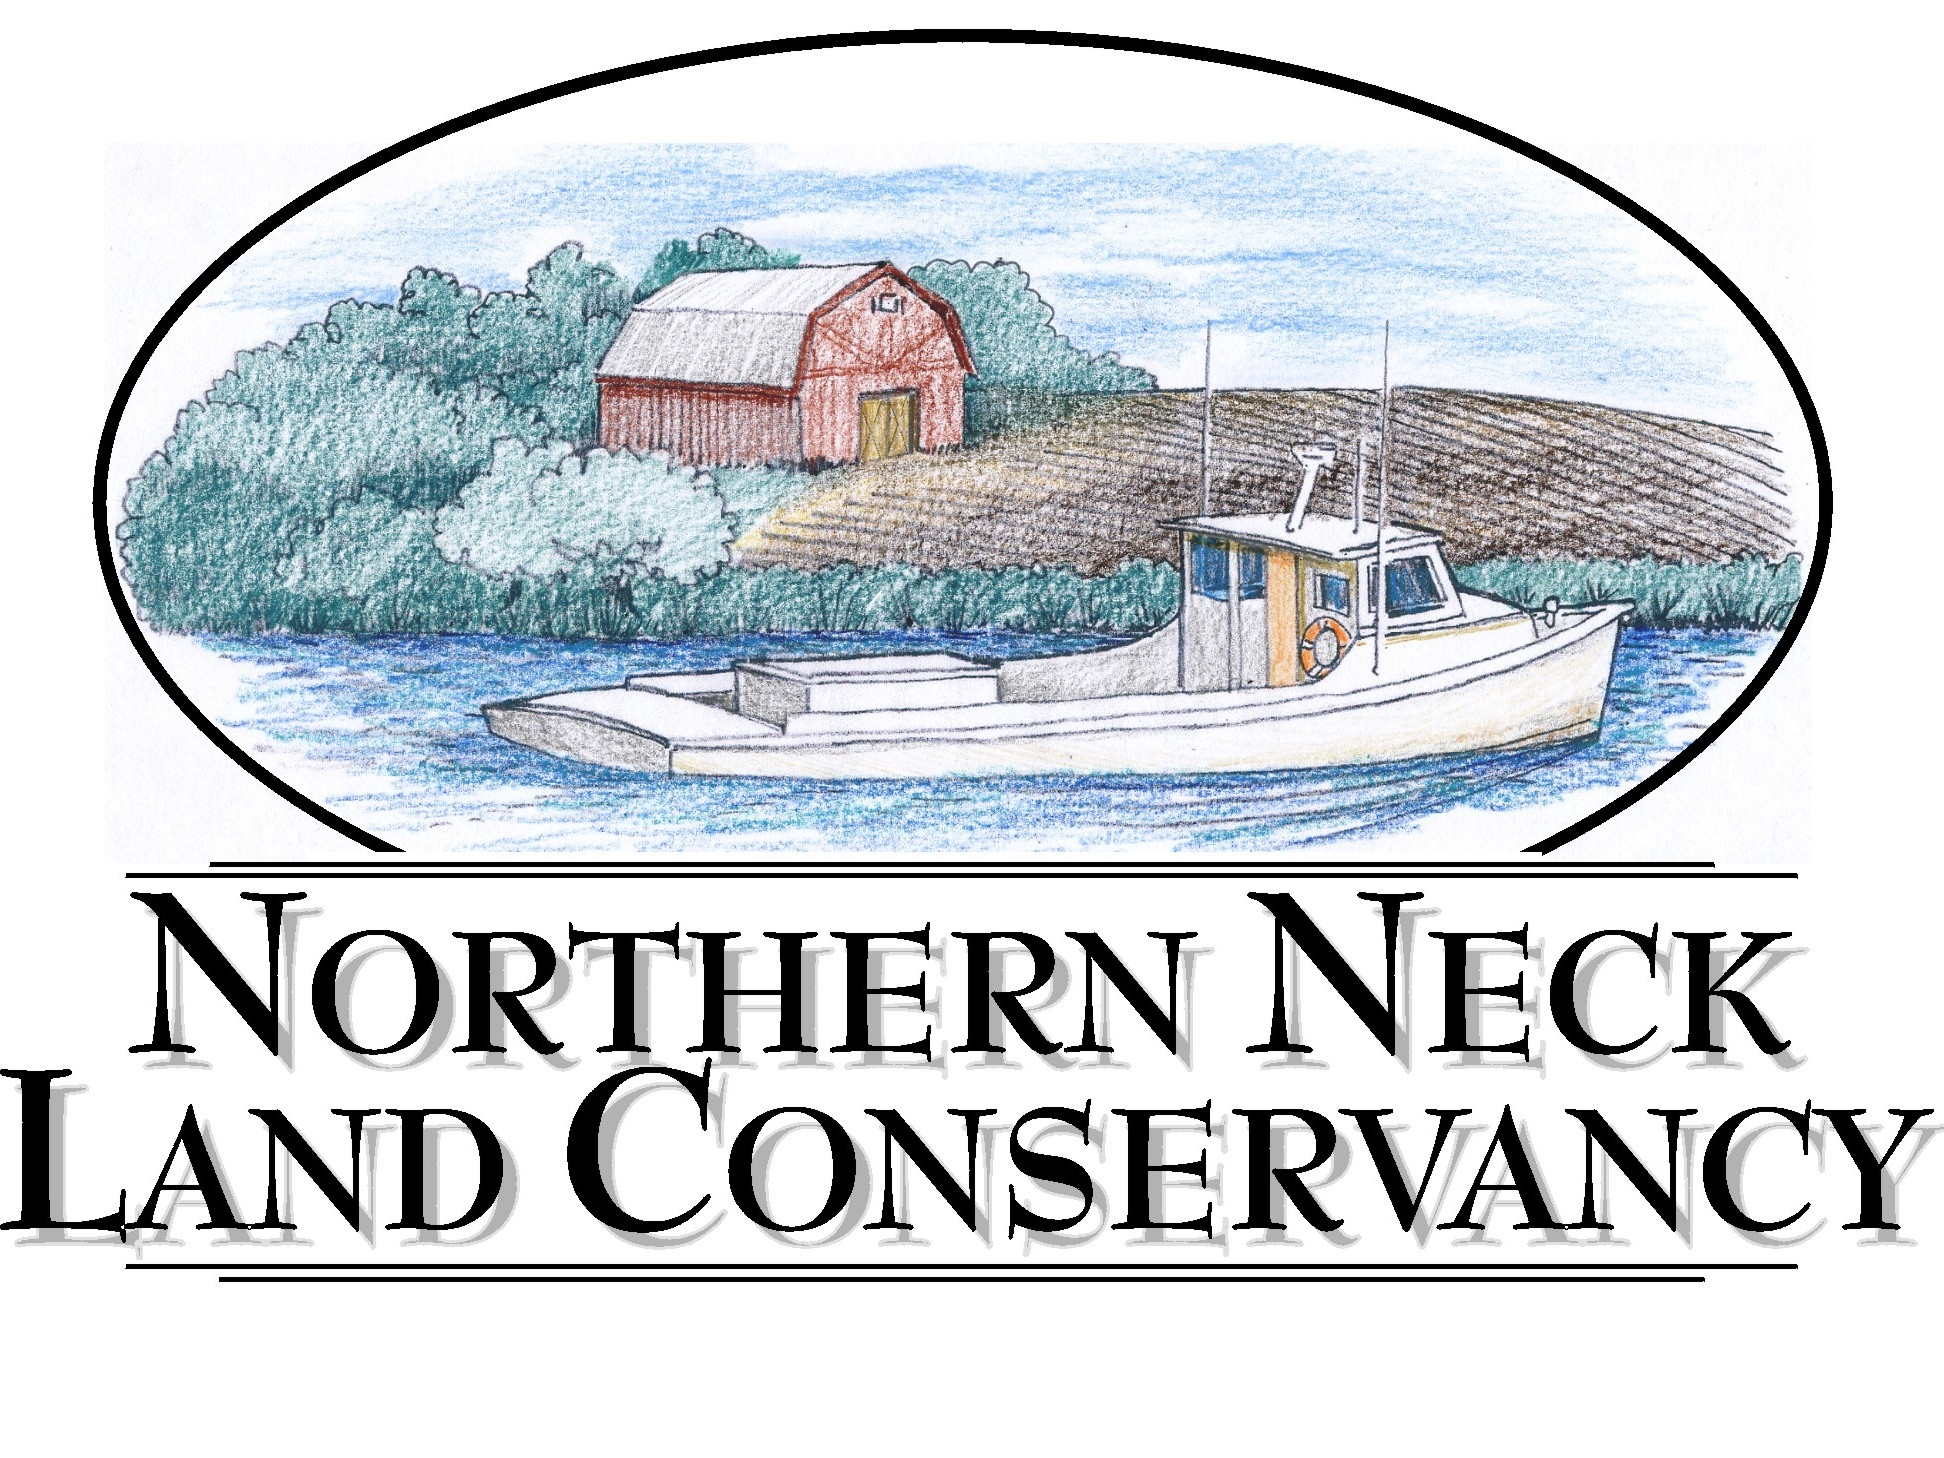 Northern Neck Land Conservancy